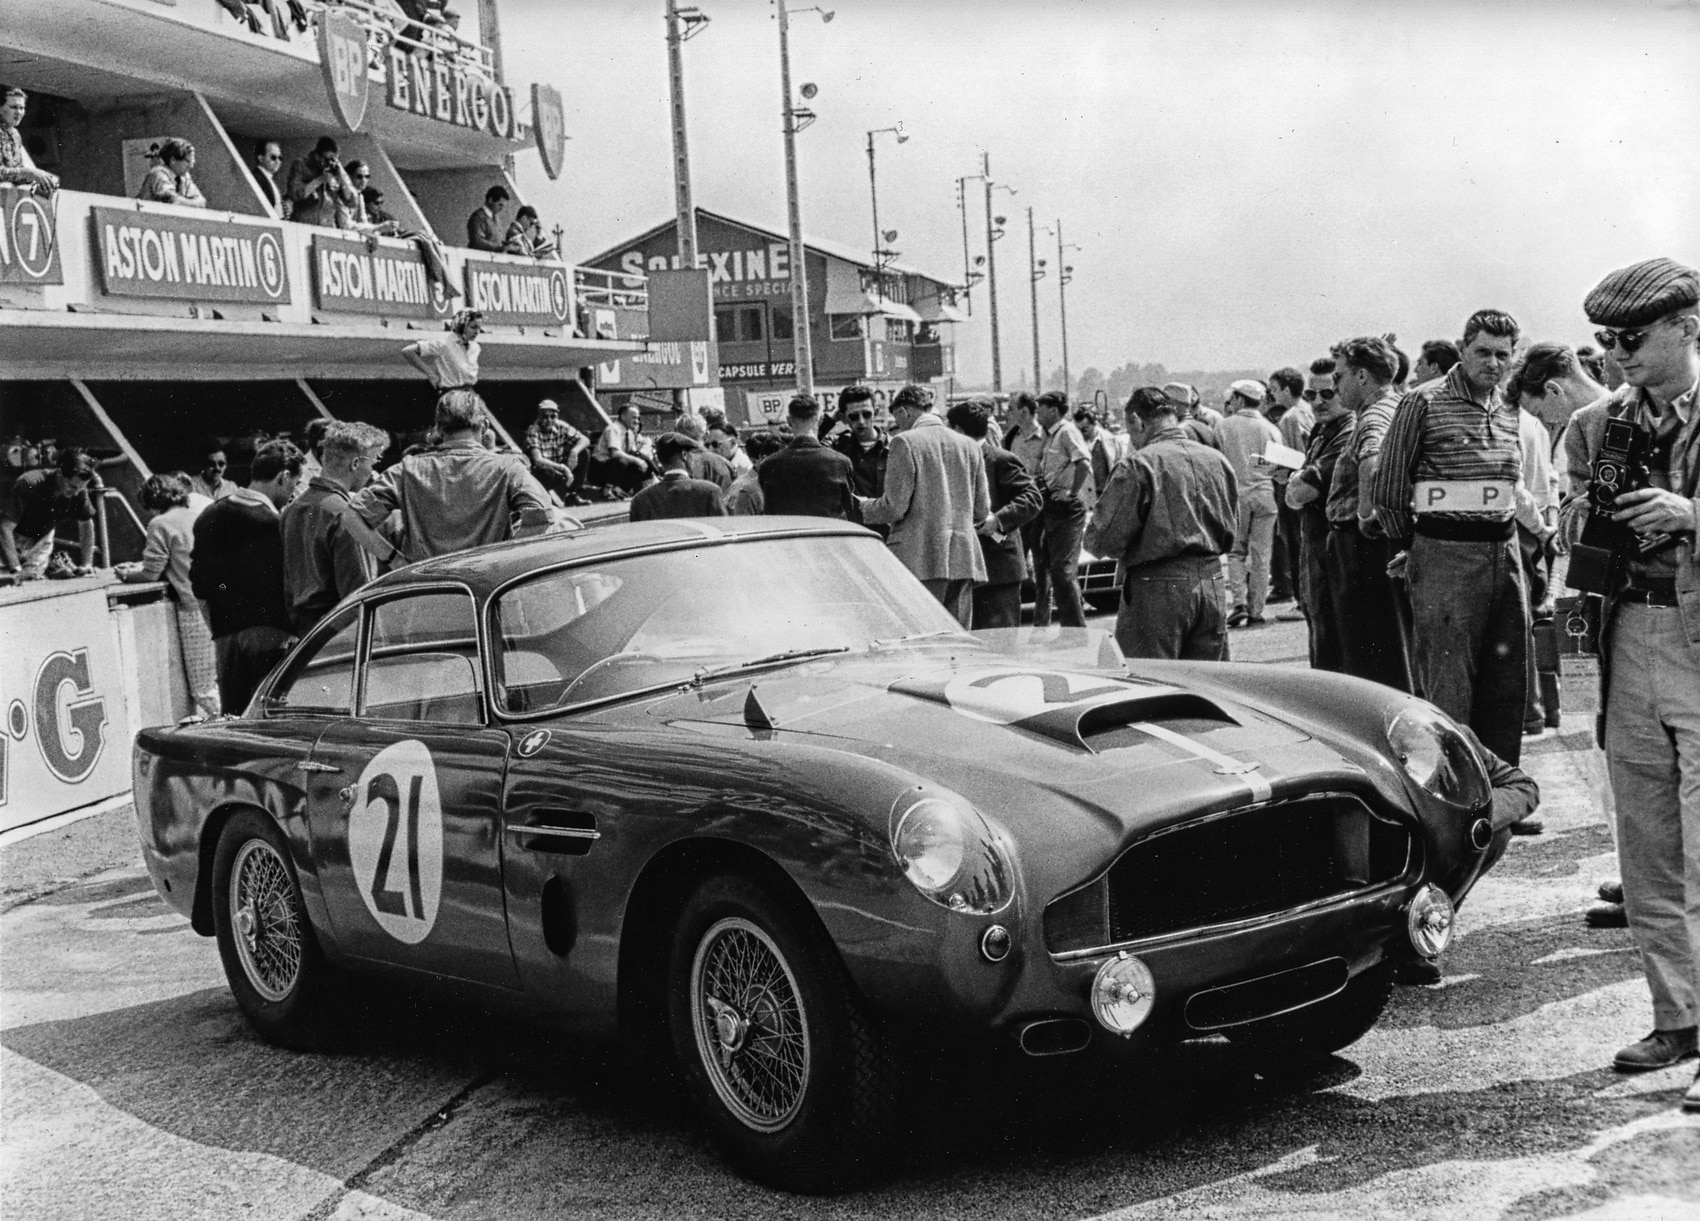 aston-martin_DB4-GT_Continuation_recreation_ruoteclassiche